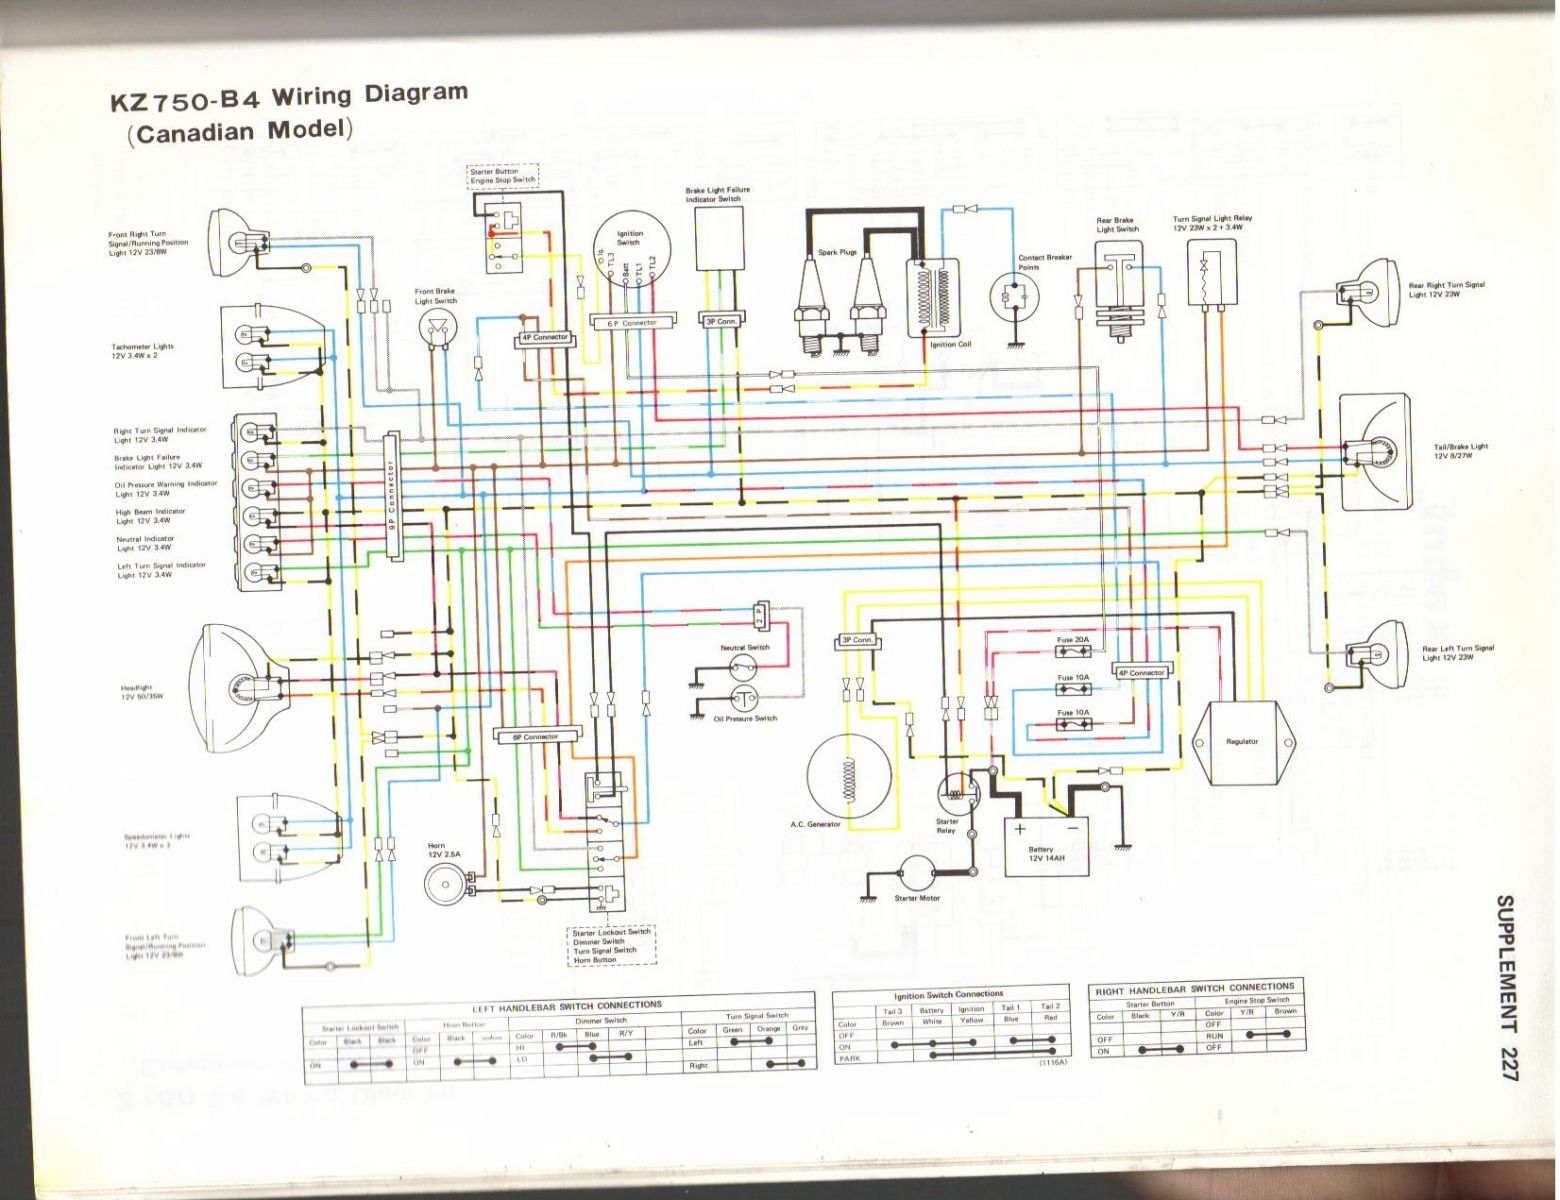 Electrical Wiring Diagram Kawasaki 1300 Voyager Xii Kz1300 Library Of Diagrams U2022 Rh Sv Ti Com 1985